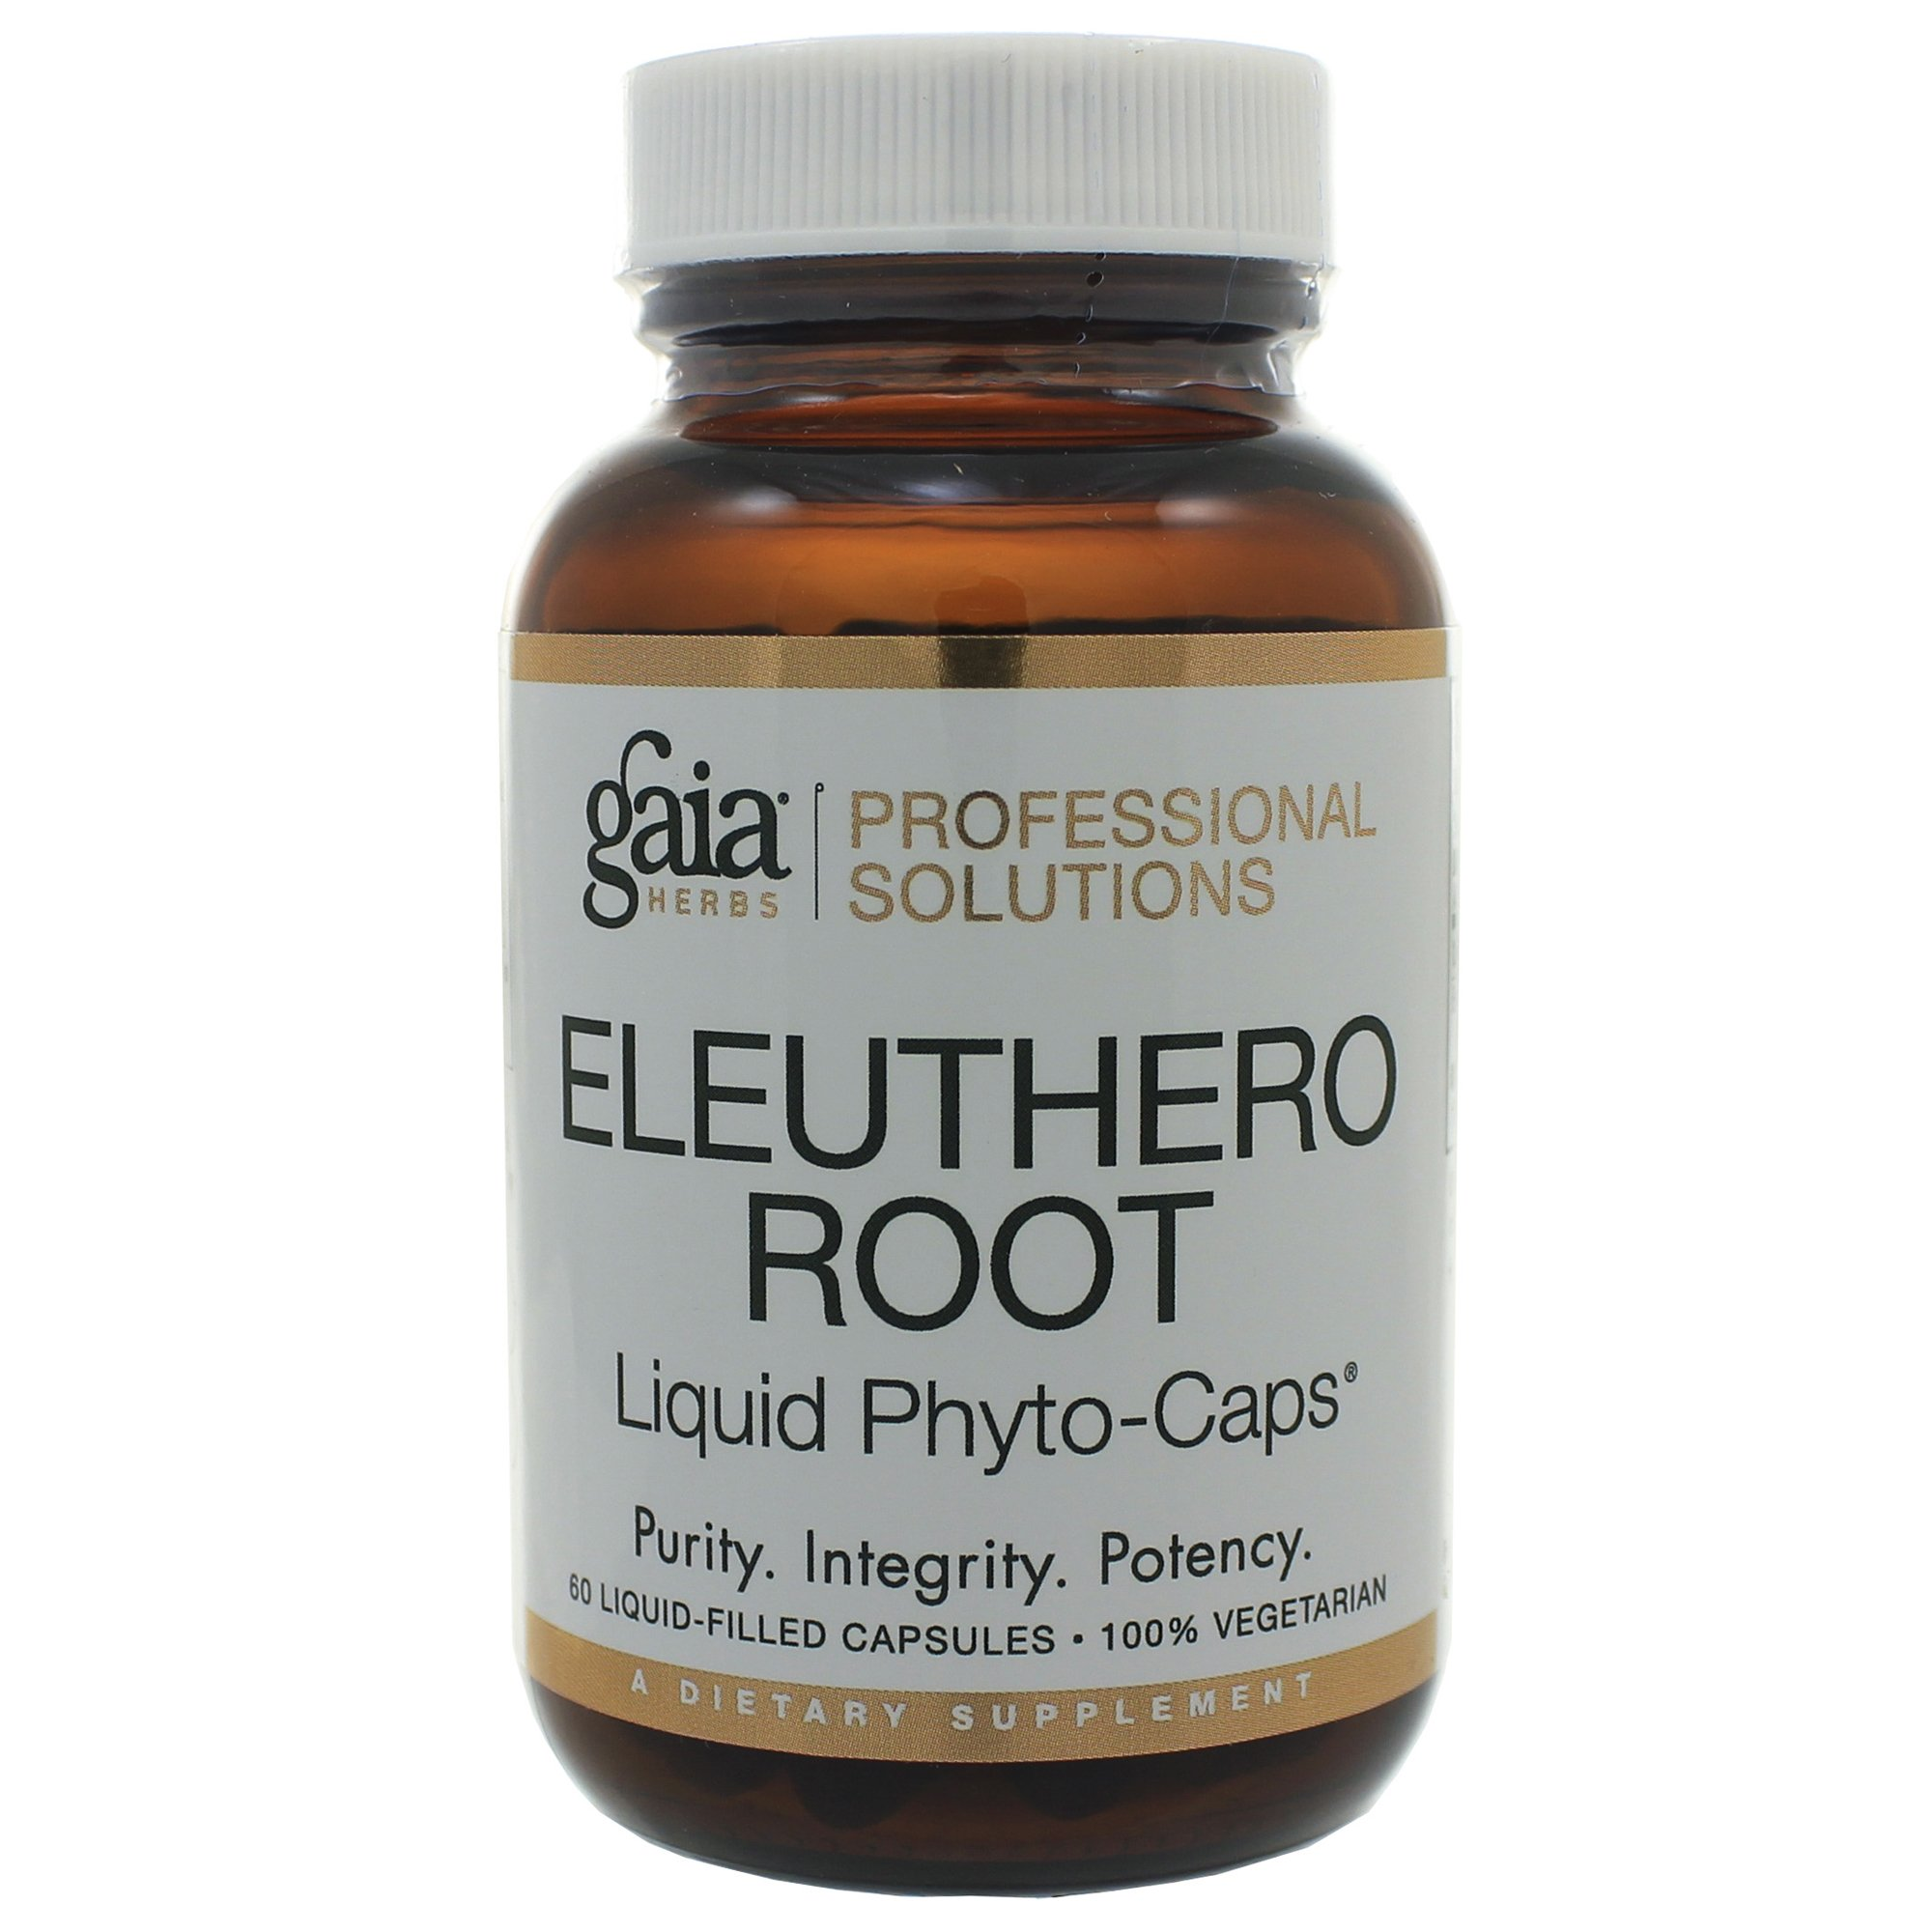 Eleuthero Root Capsules 60 Capsules (Pack of 2)